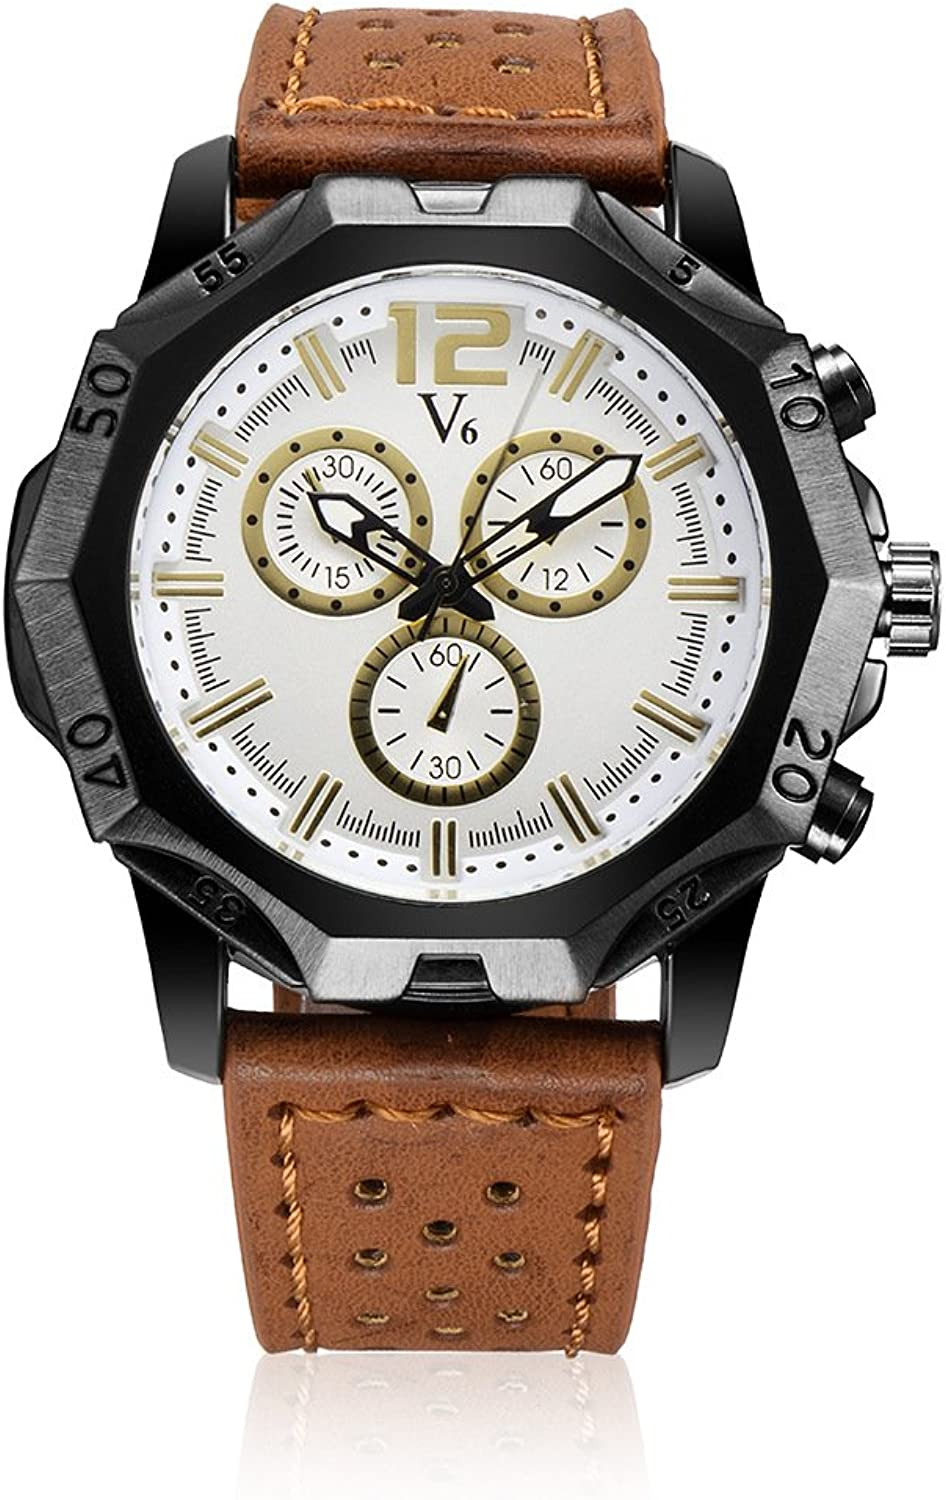 XM Casual upscale men's casual watch fake threeeye double scale market quartz watches , yellow